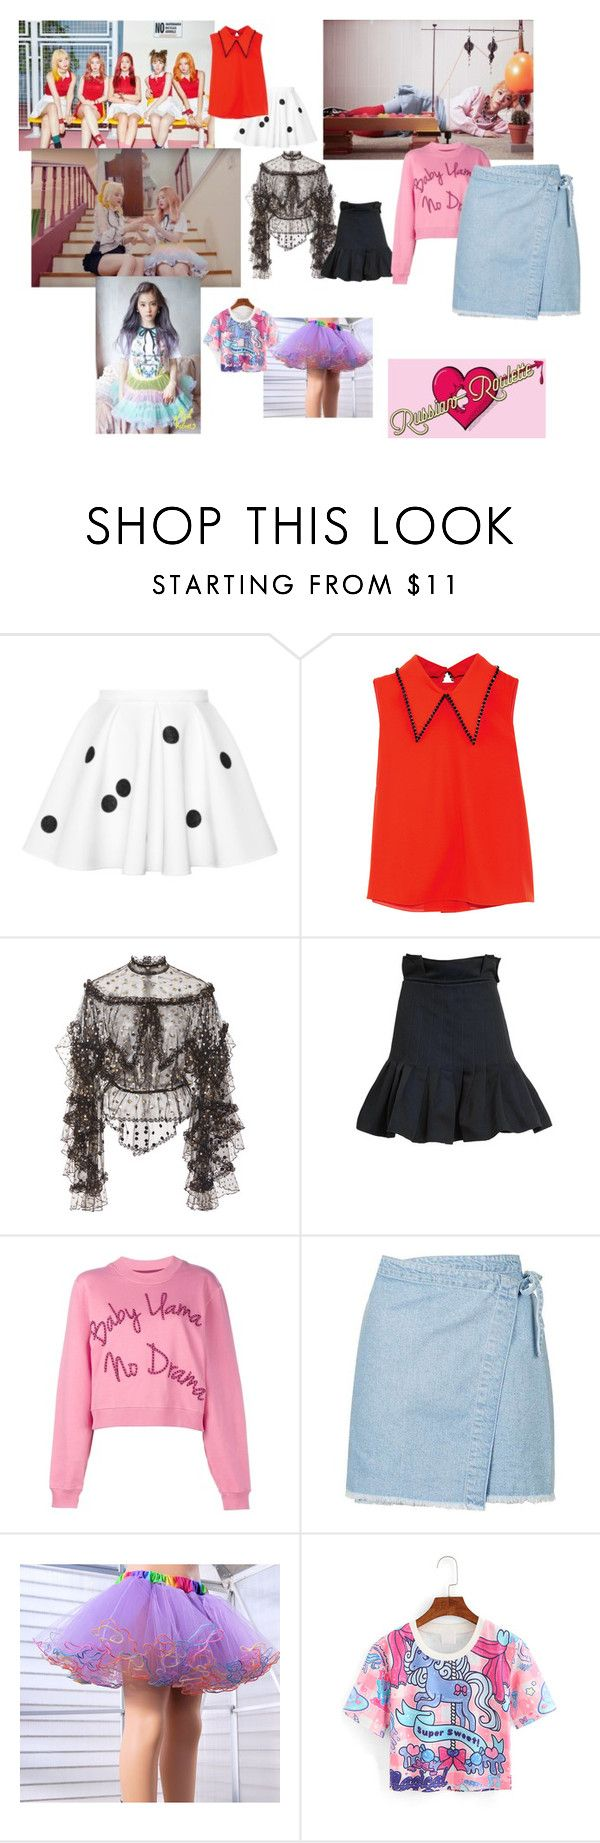 """""""Pastel"""" by mandalinaqitrydewi on Polyvore featuring McQ by Alexander McQueen, Rodarte, E L L E R Y, House of Holland and Topshop"""